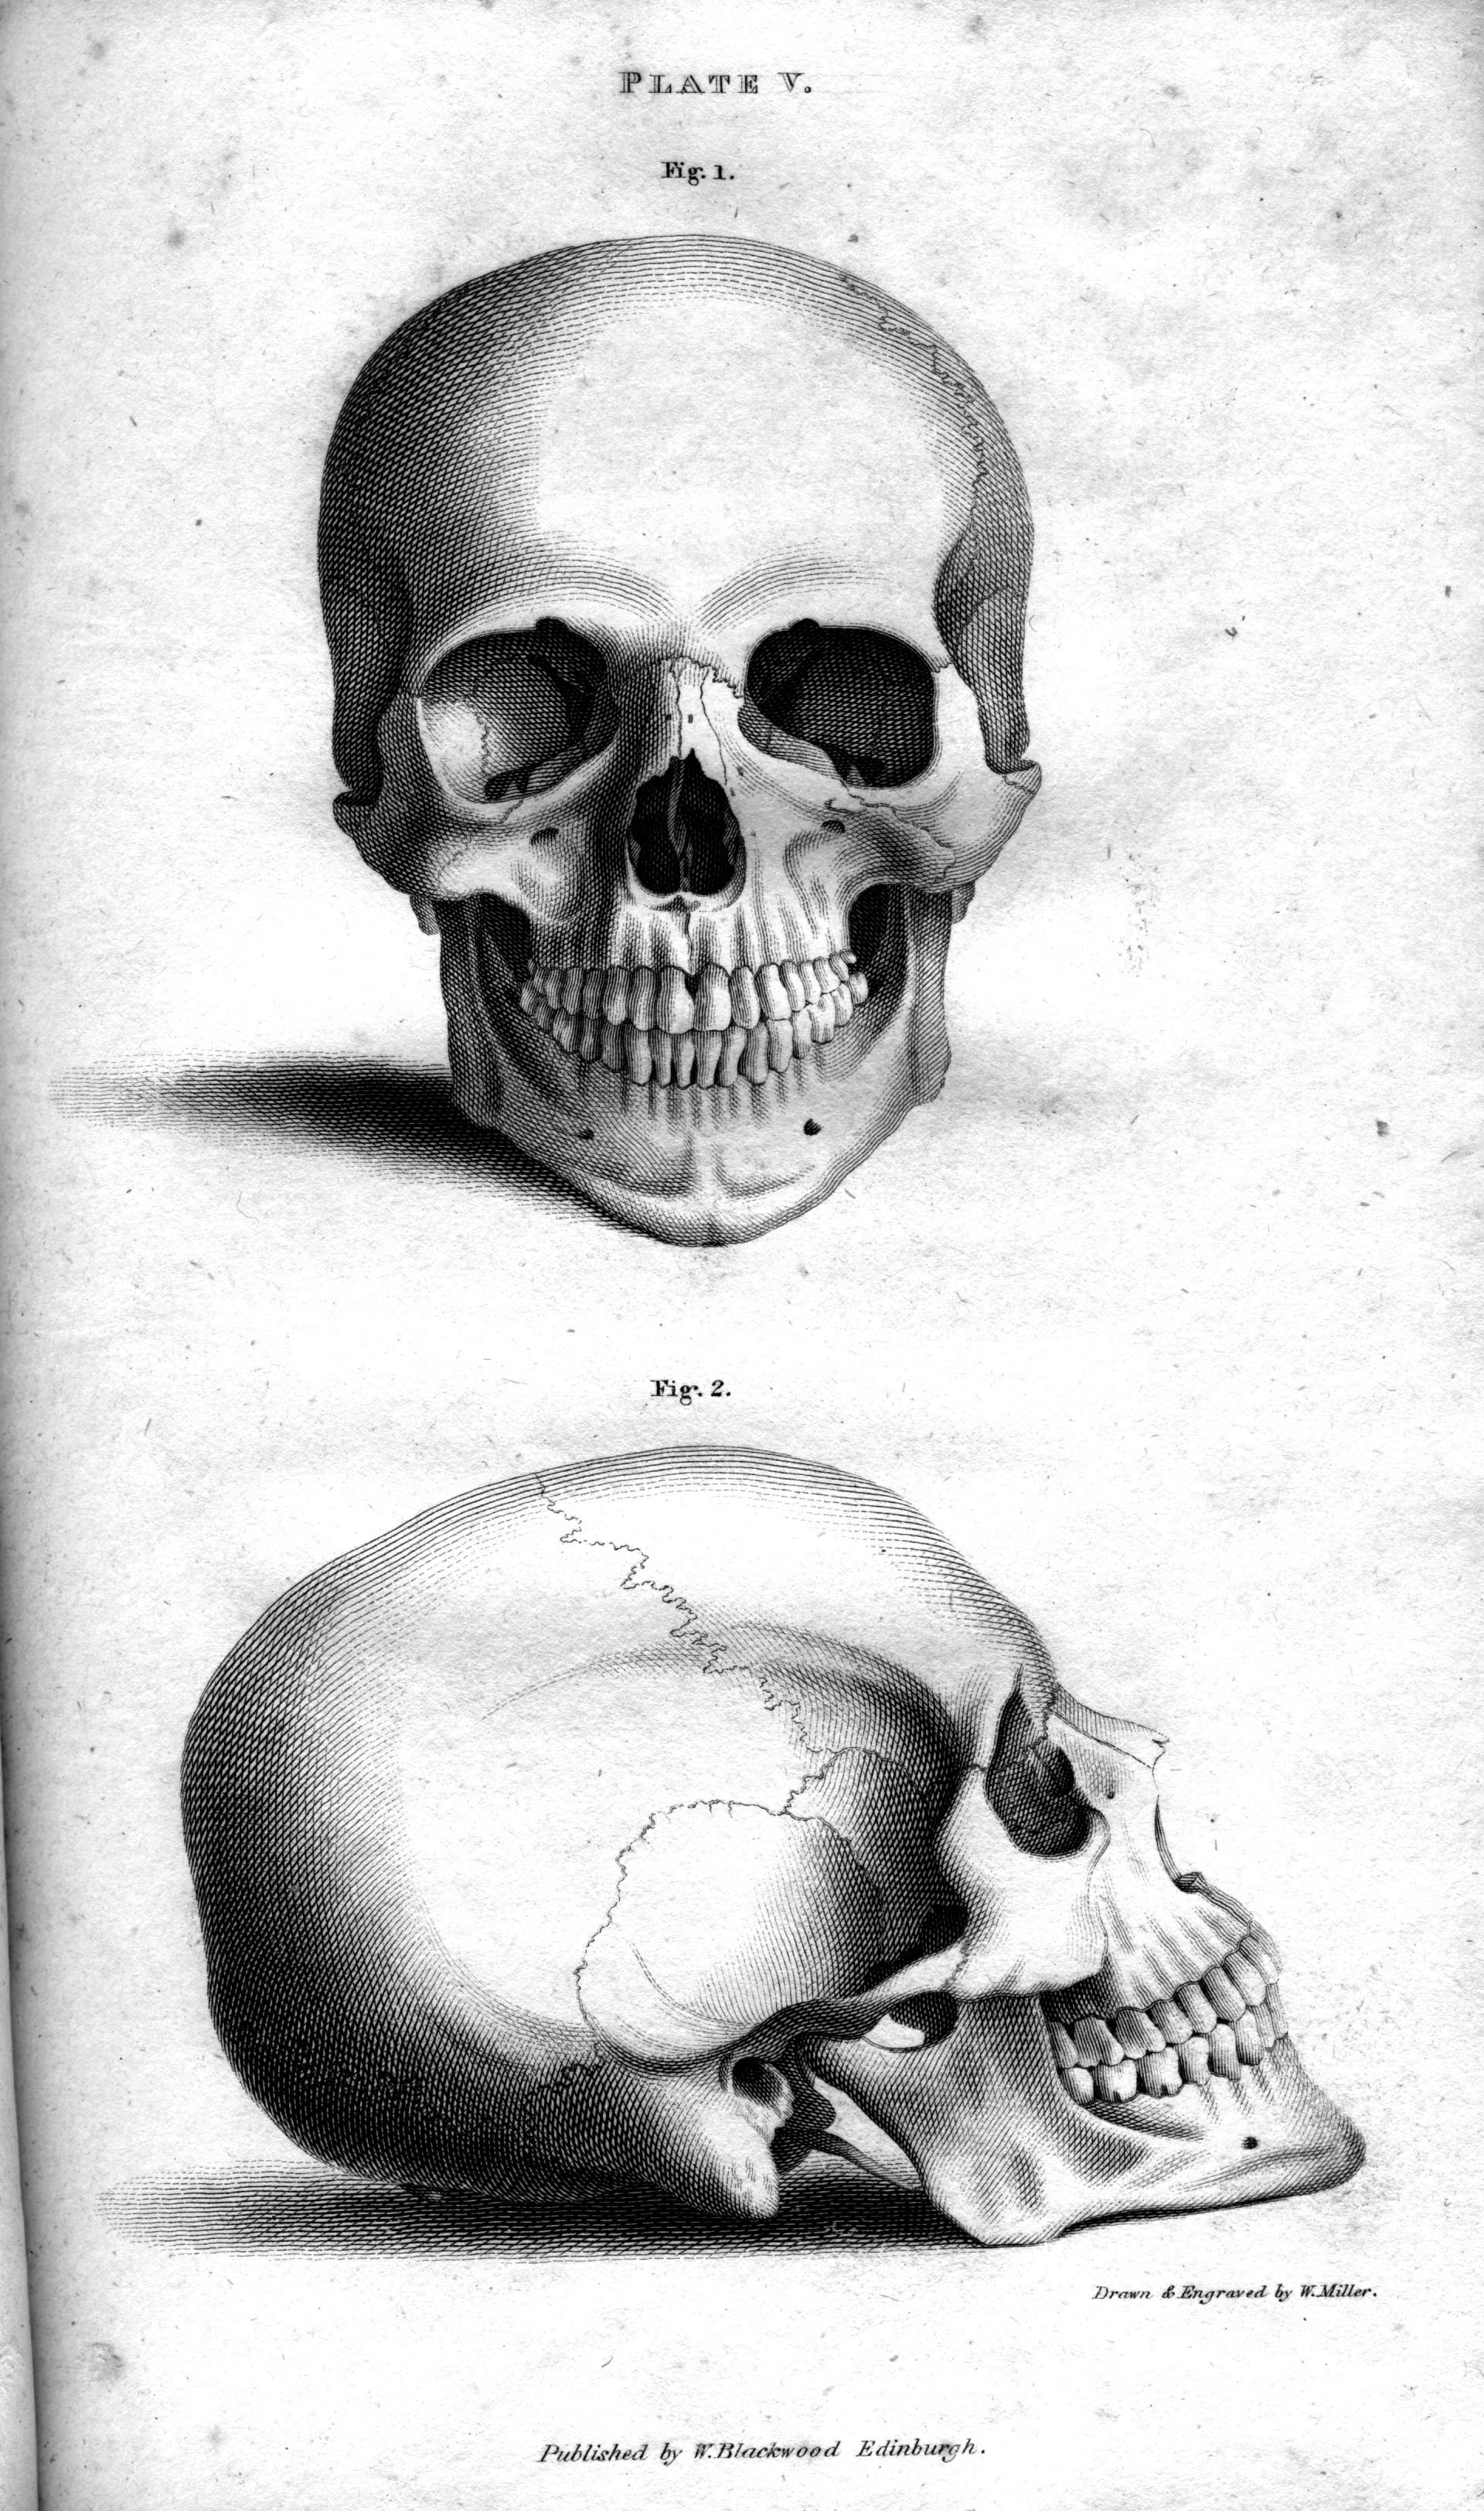 File:Plate Vb Human Skull, engraving by William Miller after drawing ...